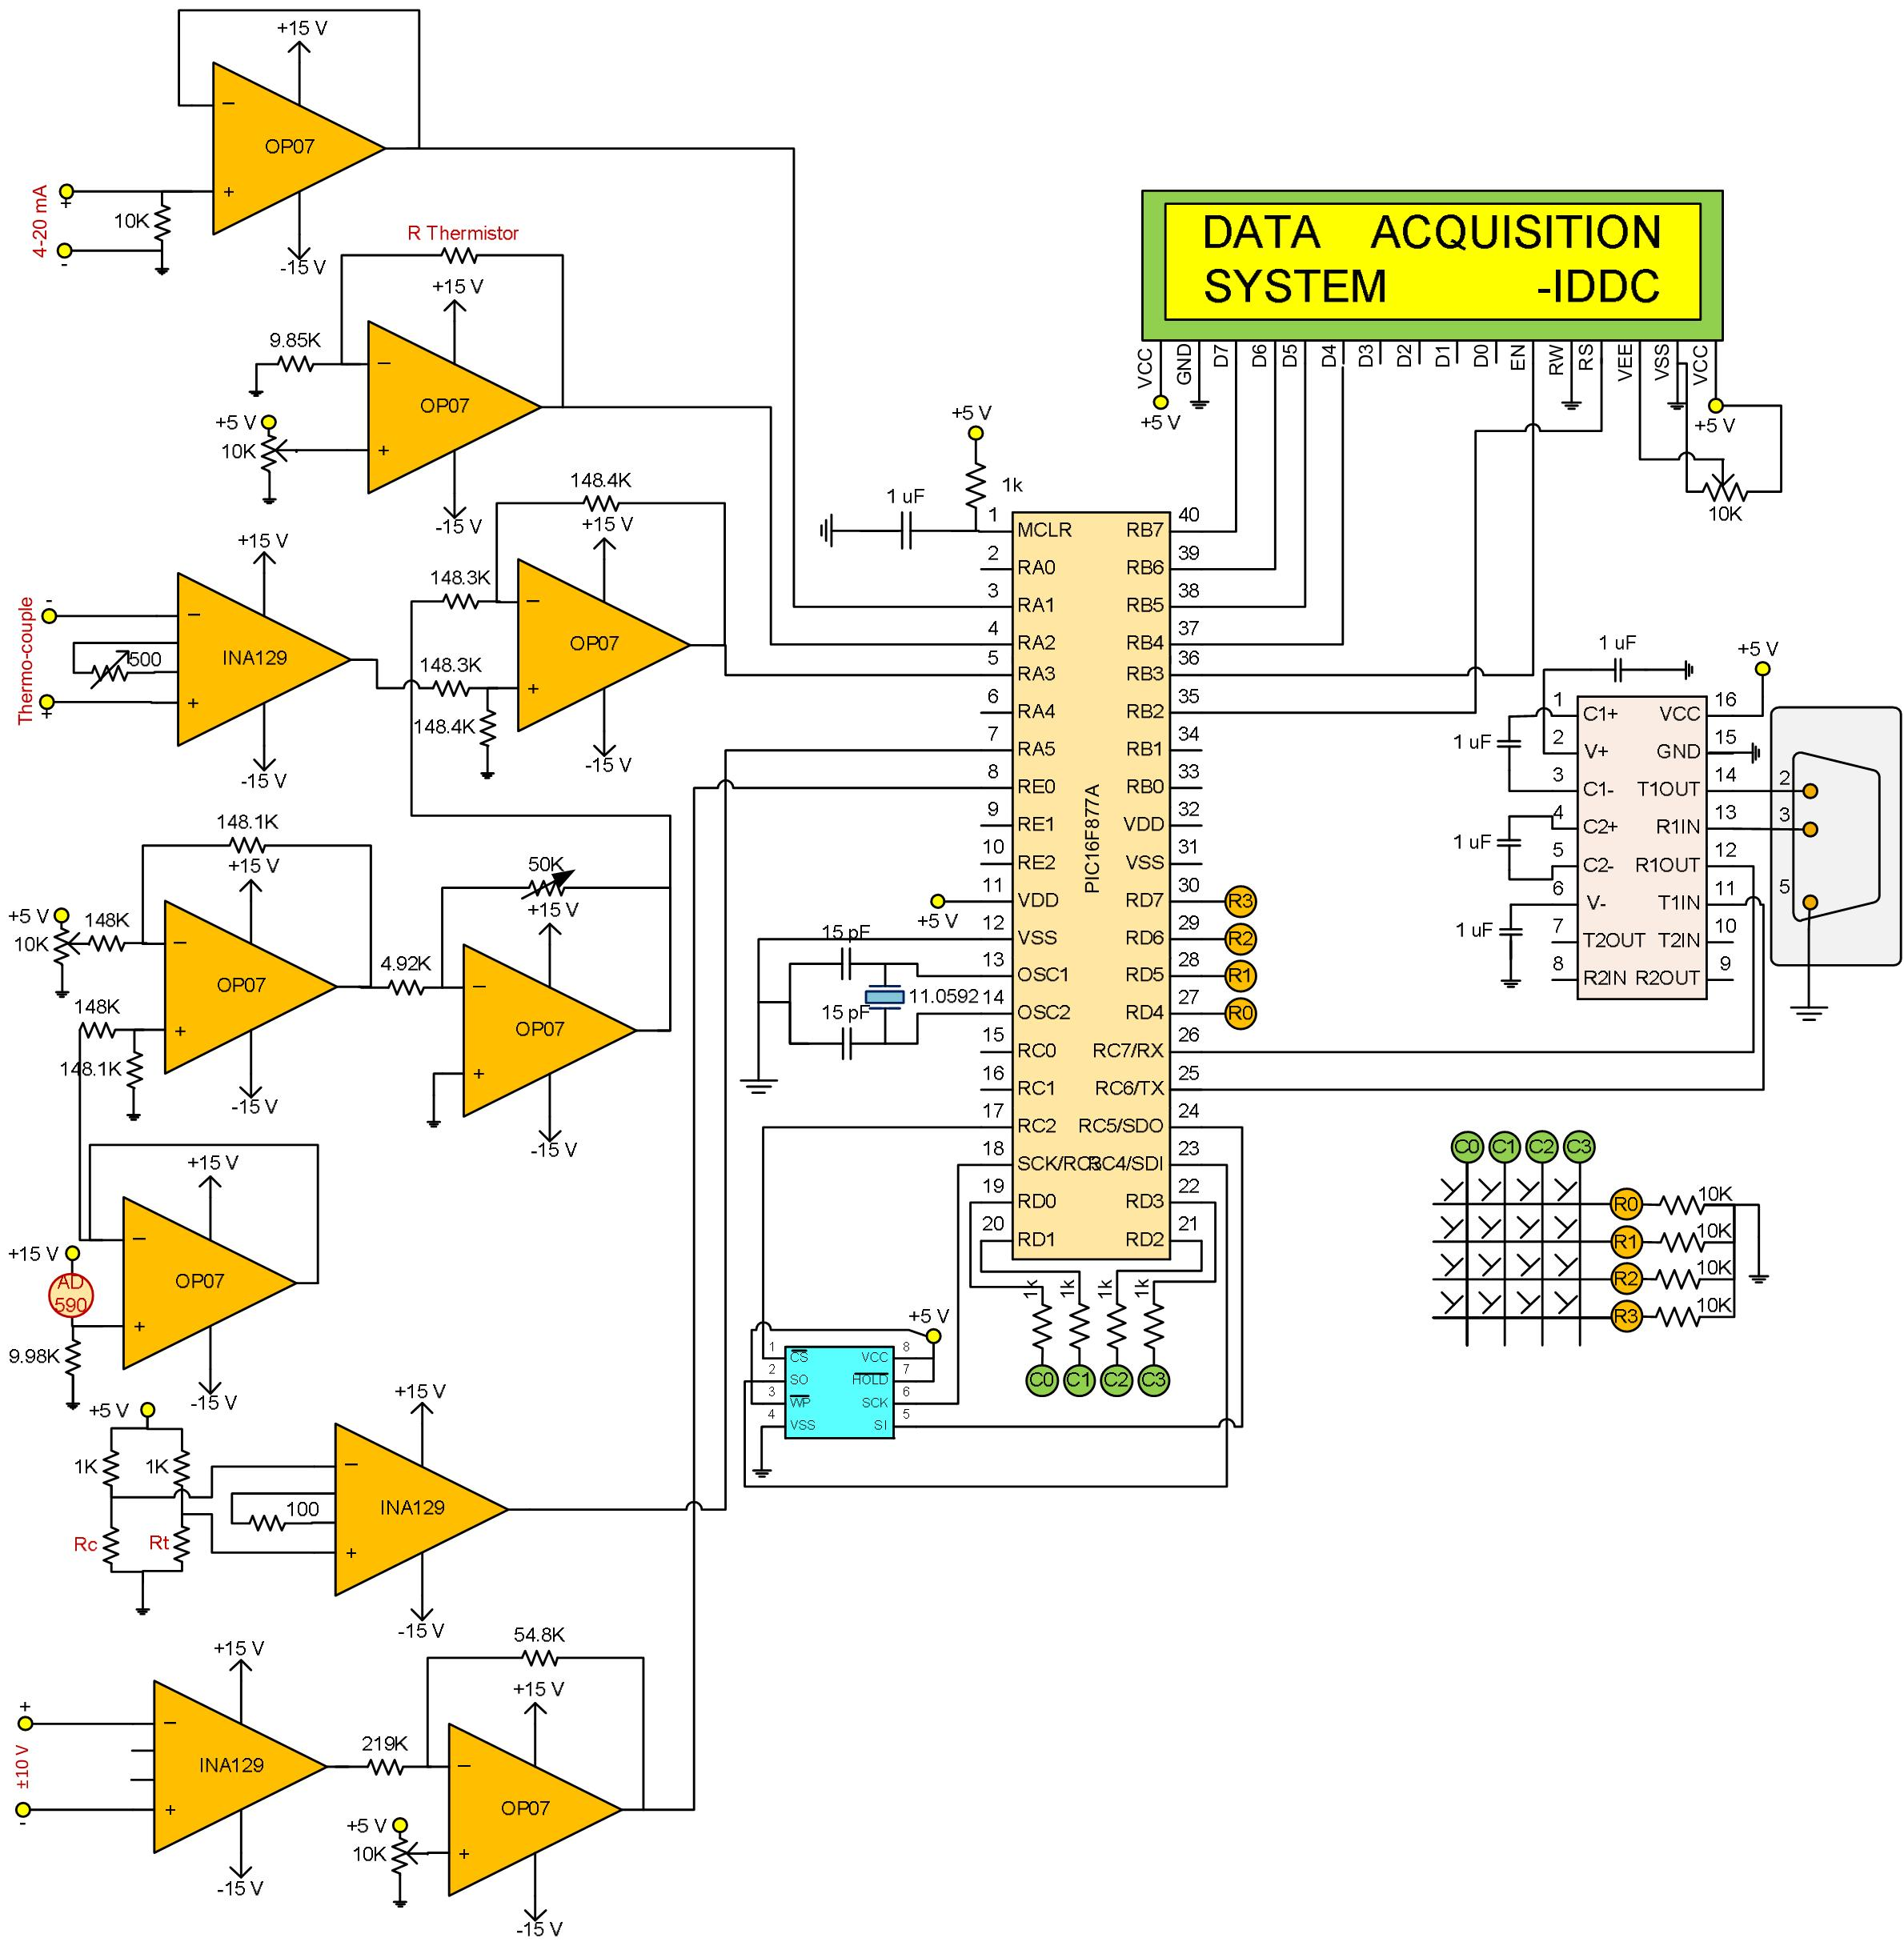 Data Acquisition Equipment : Data acquisition system using pic f a with serial